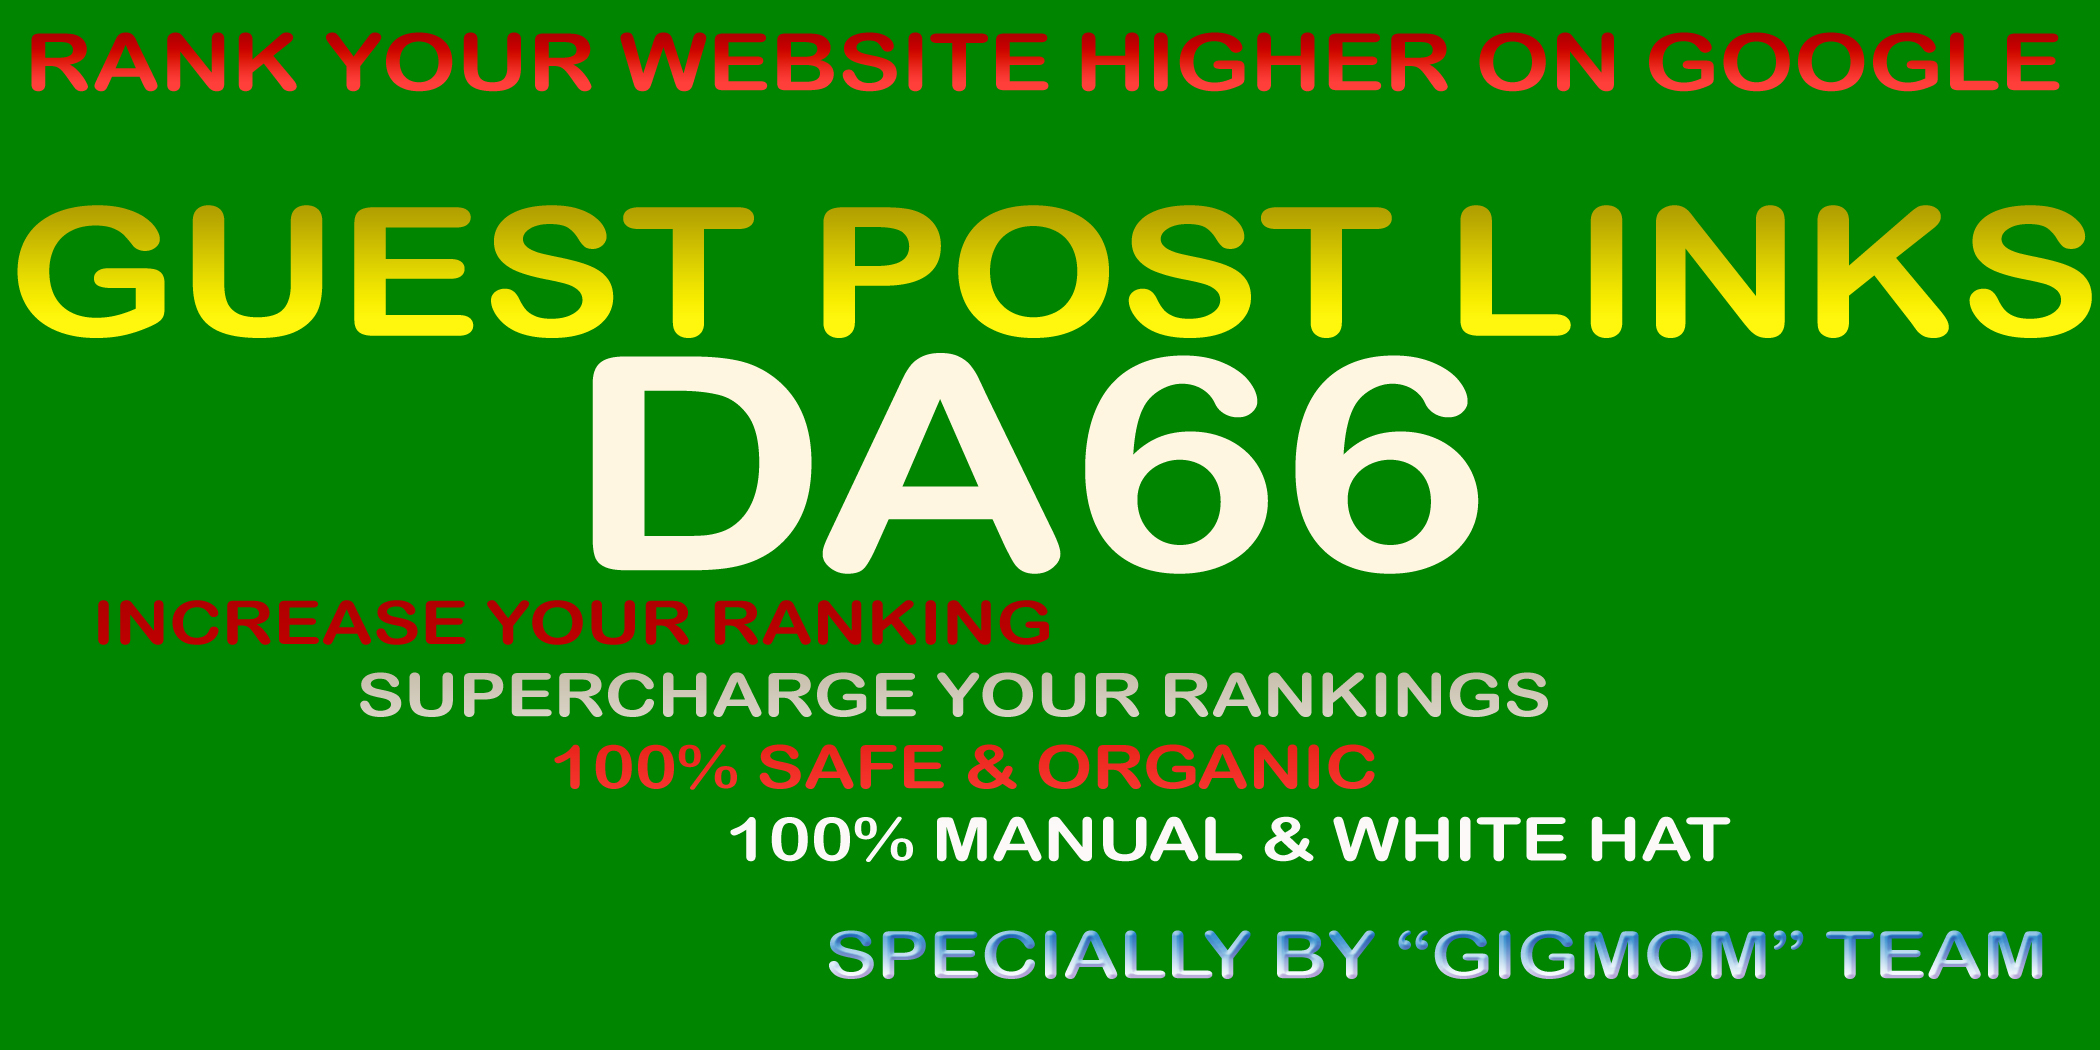 5 Dofollow Guest Post Links DA66 High Visitor General Blogs for all Niche to Rank Higher